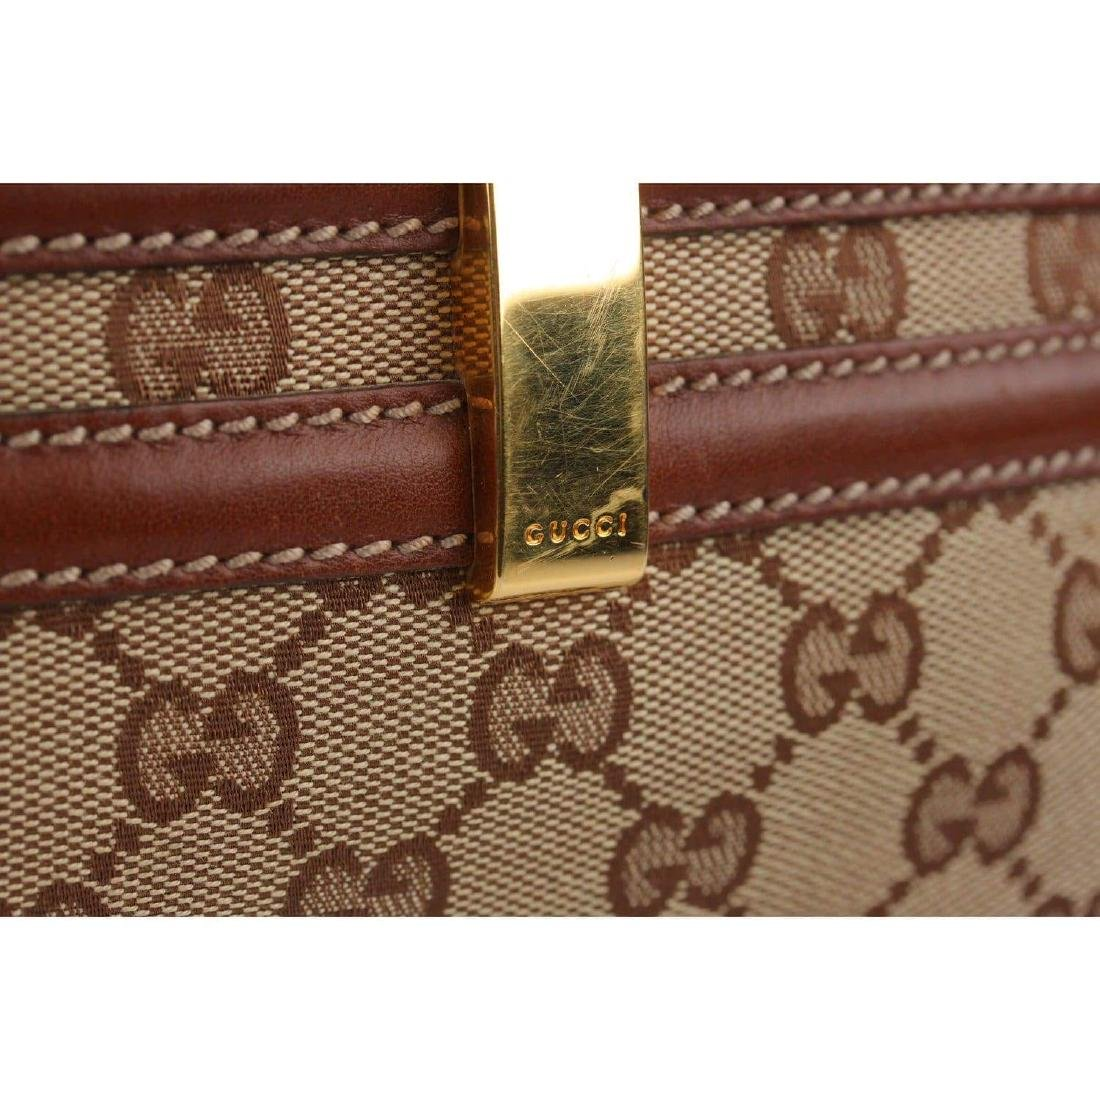 Gucci Wave Boston Bag Satchel - 7